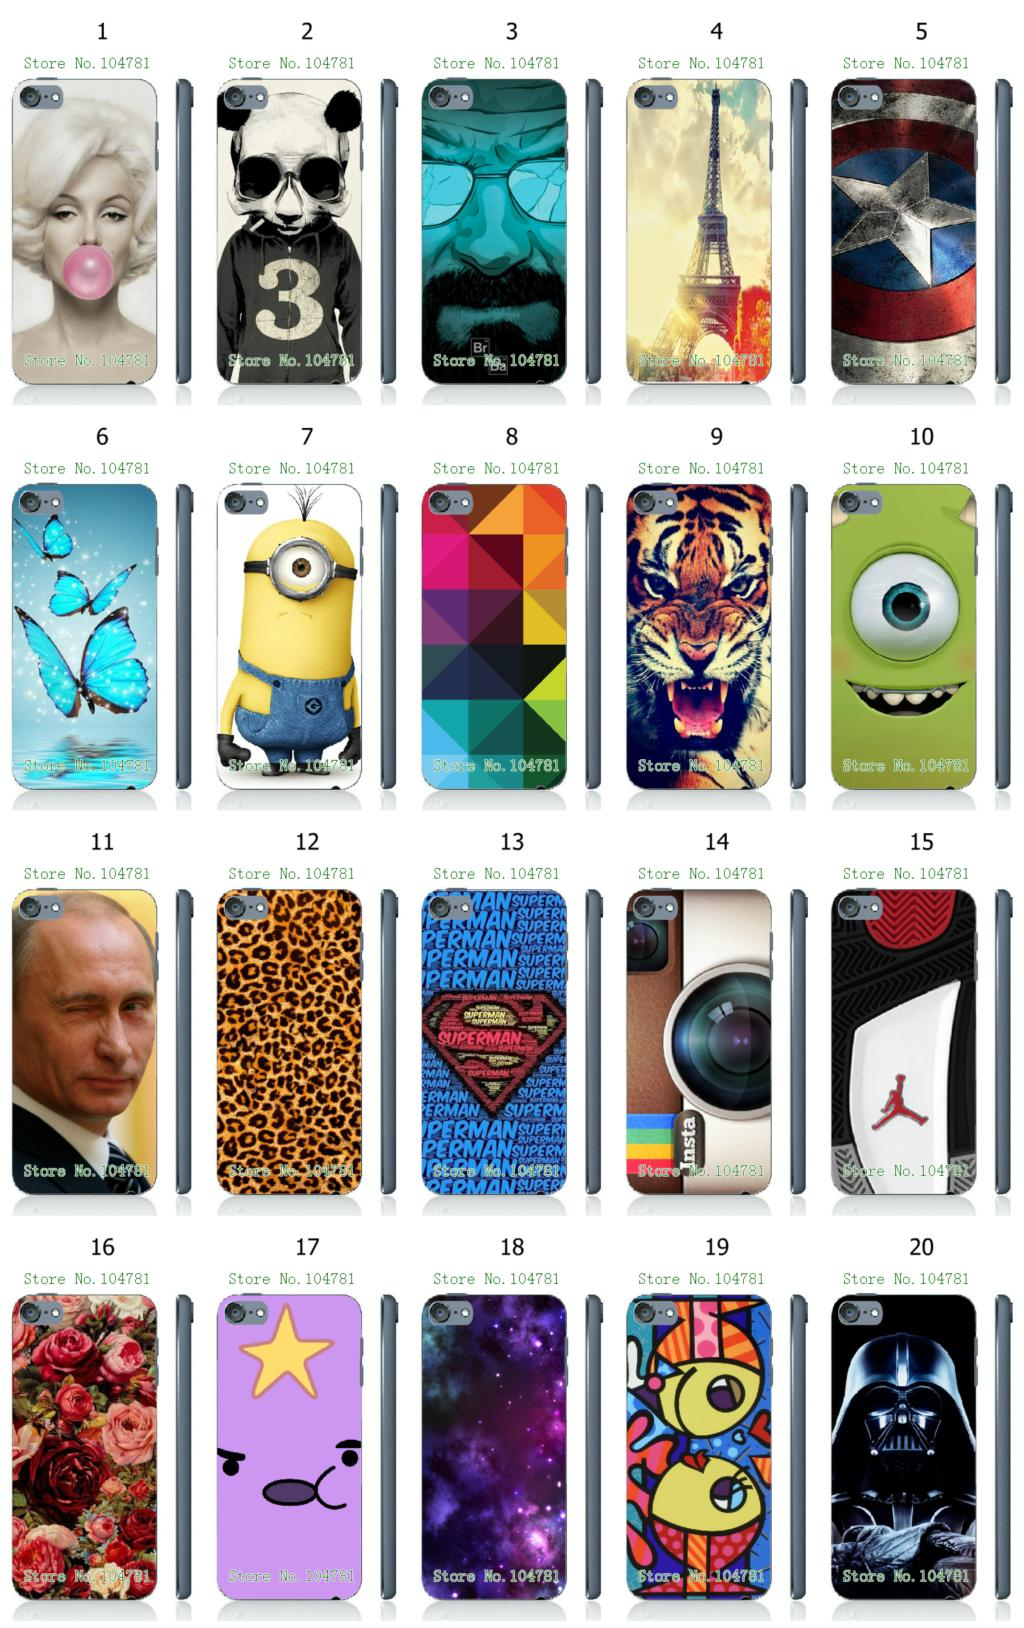 Mobile Phone Case New 1pc Instagram Minions Eiffel Tower Hybrid Design Protective White Hard Case For Ipod Touch 5 Free Shipping(China (Mainland))